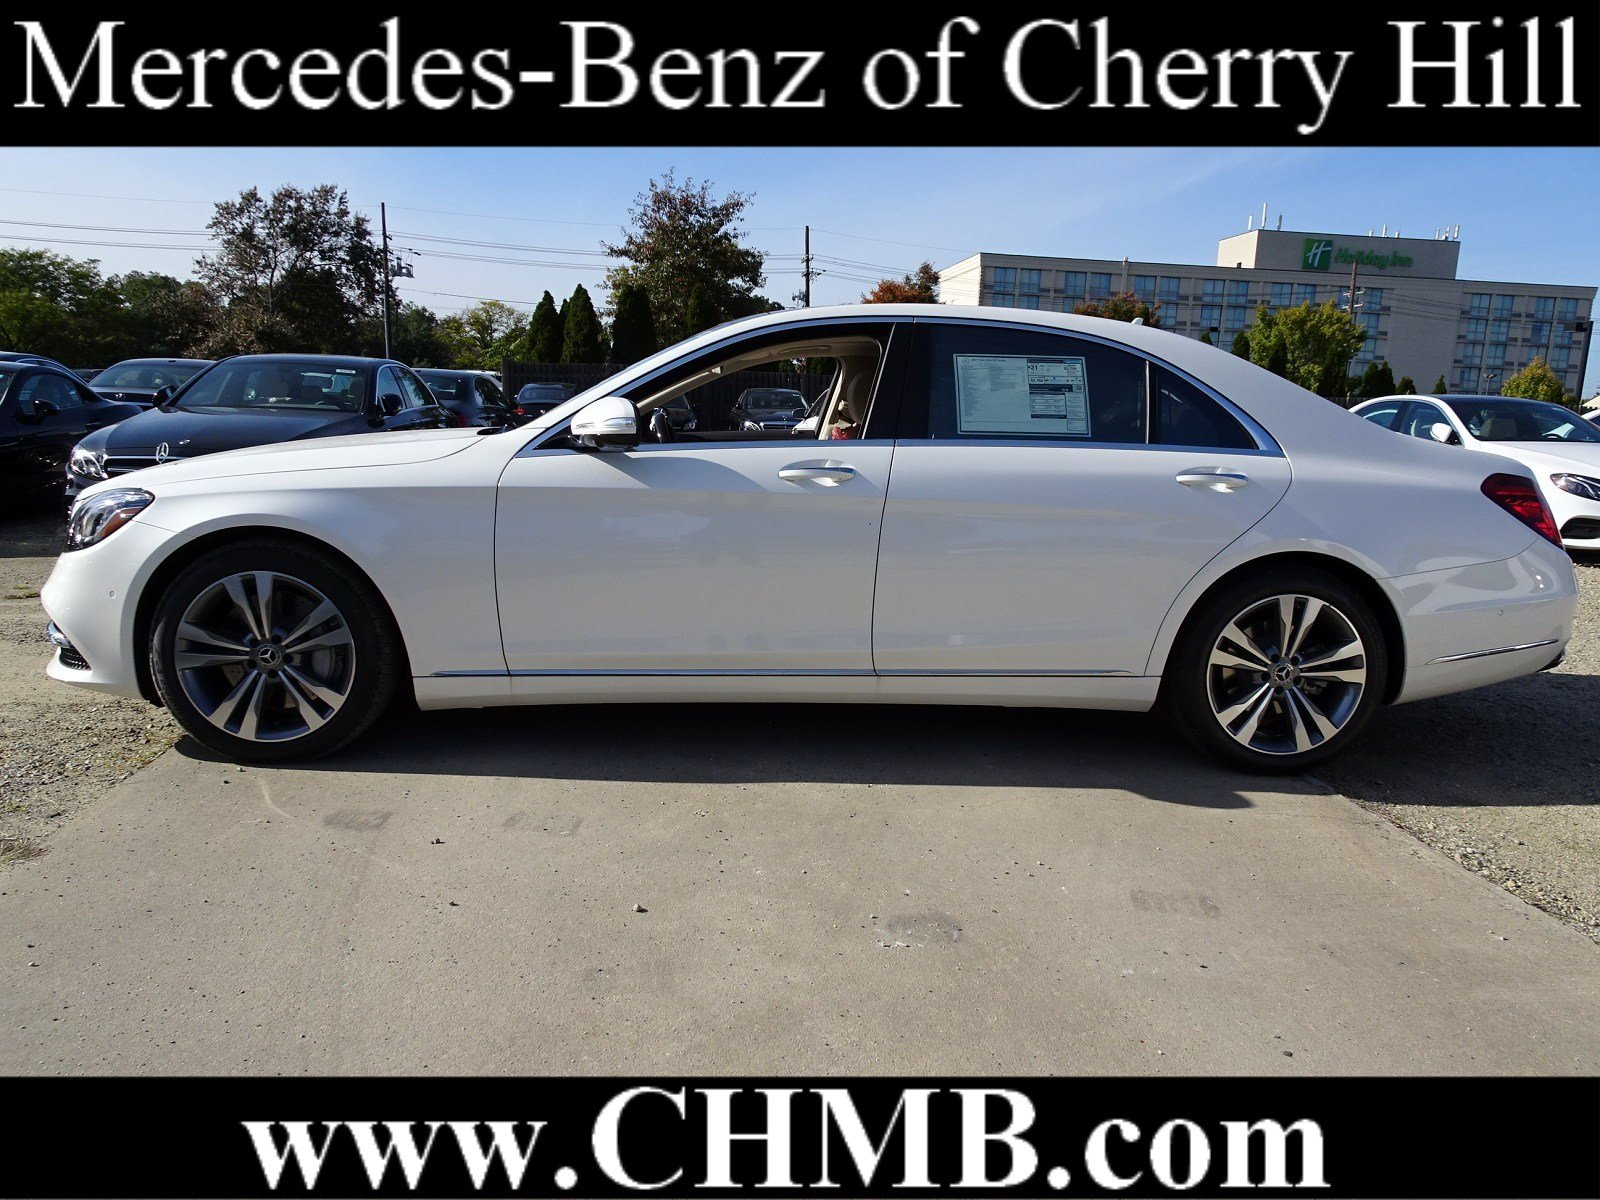 New 2019 Mercedes Benz S Class S 560 SEDAN in Cherry Hill M2456